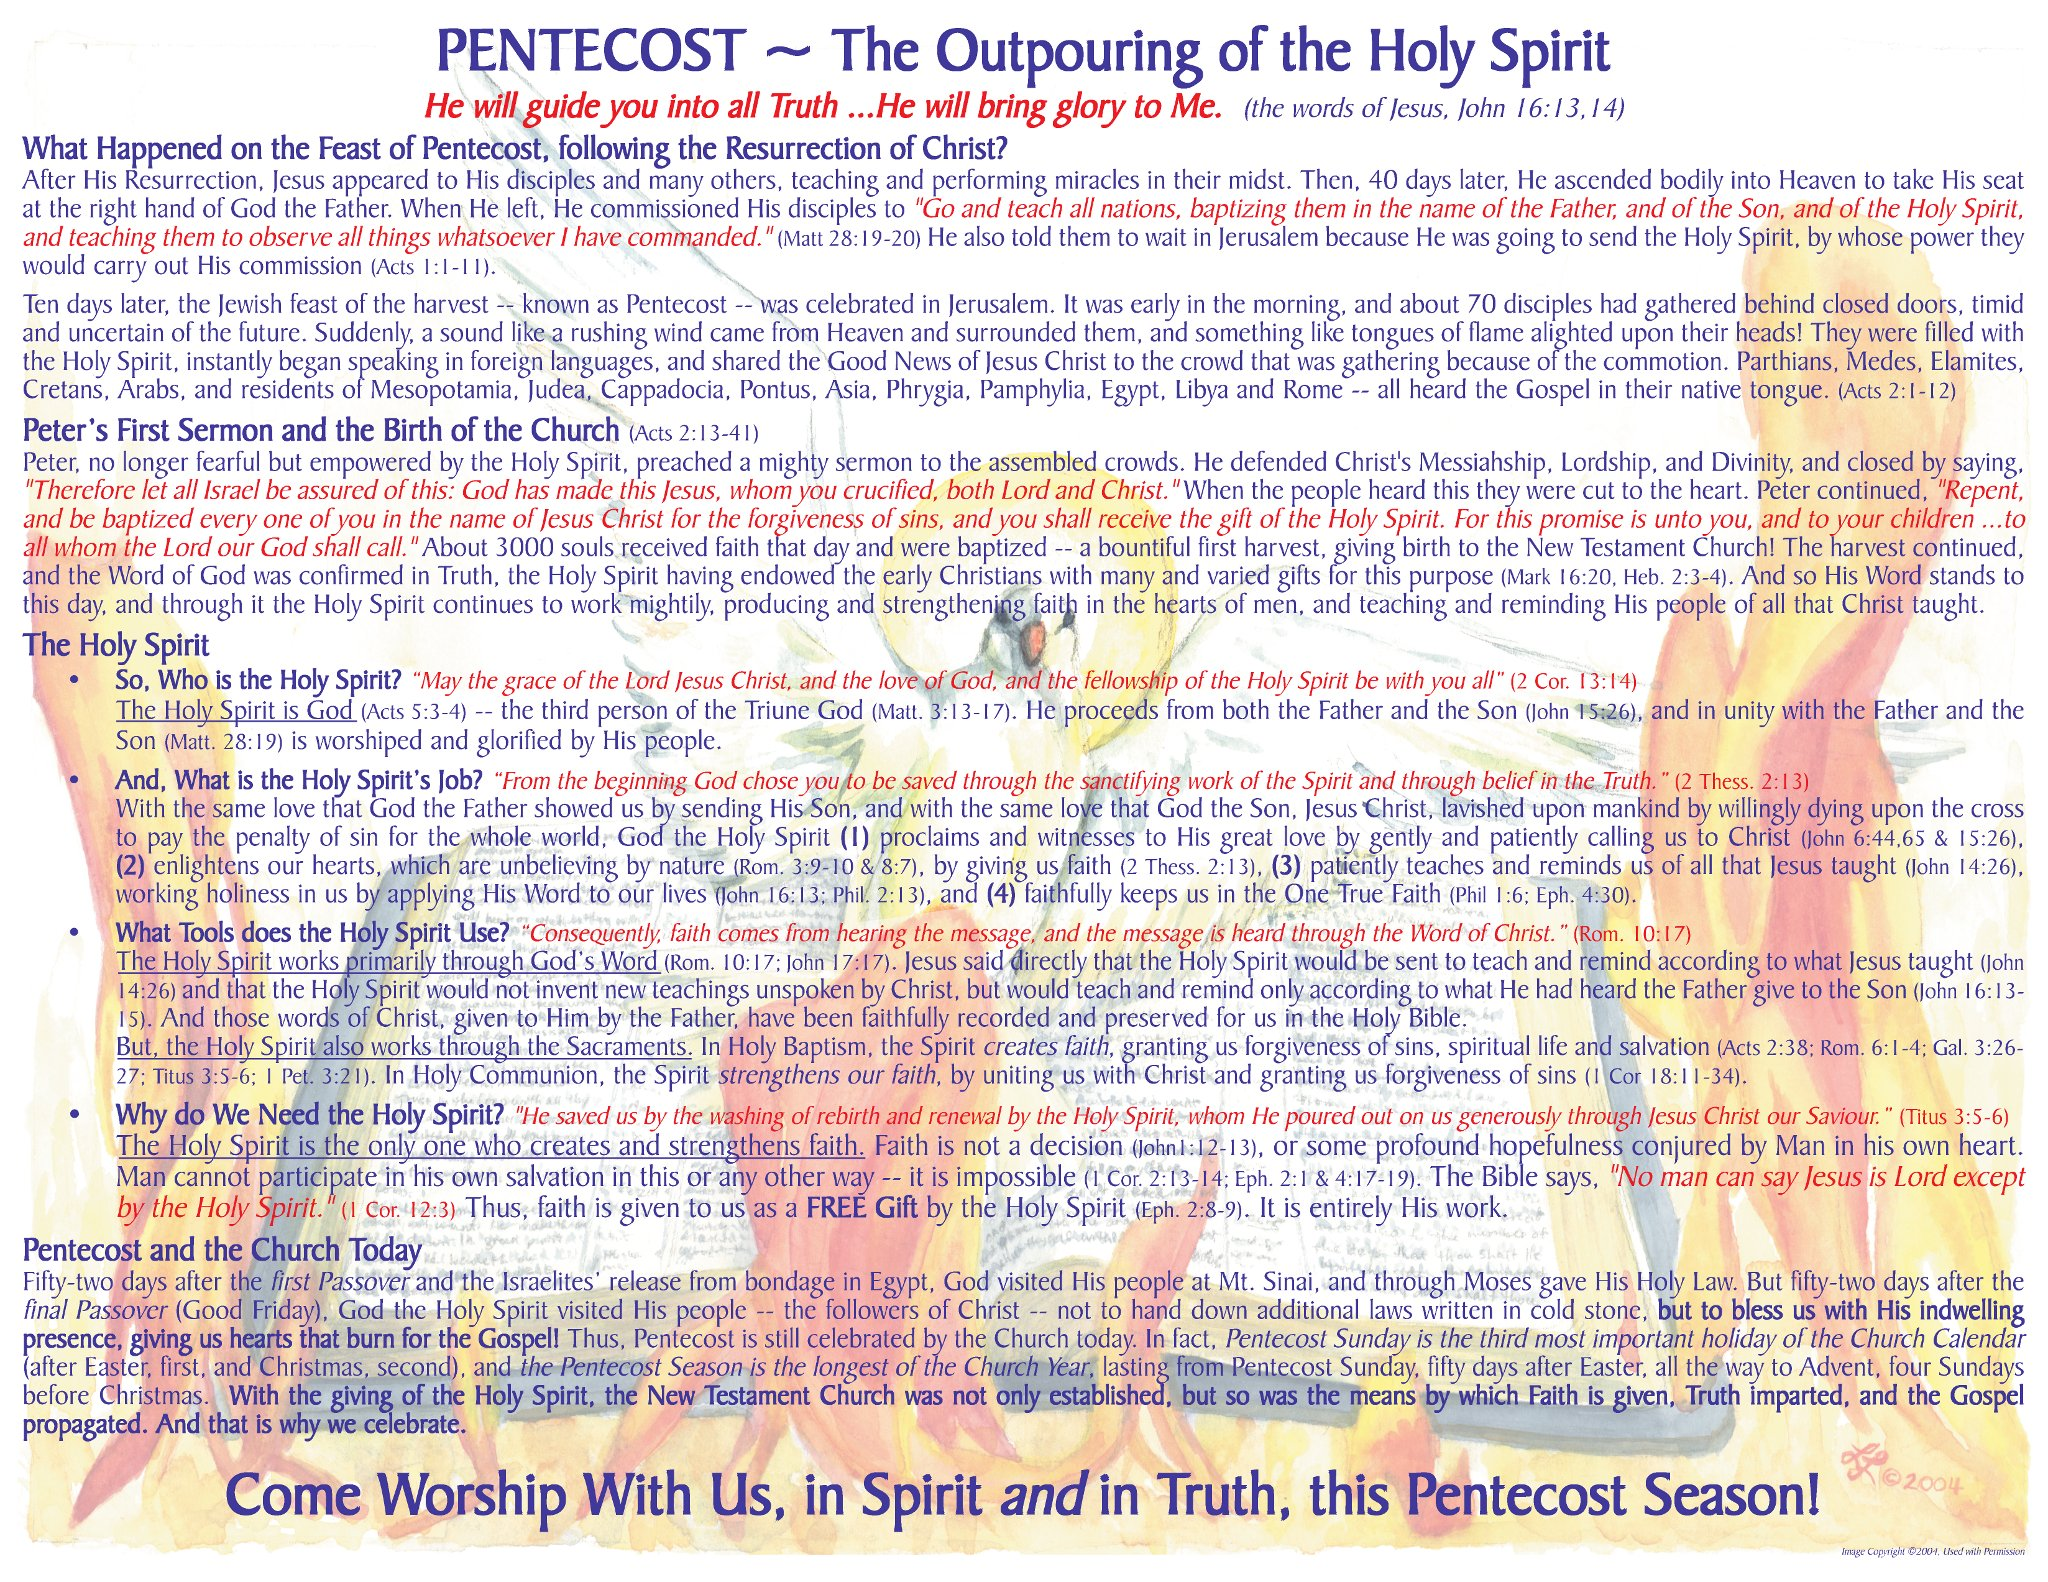 The Church Calendar and Evangelism: Pentecost